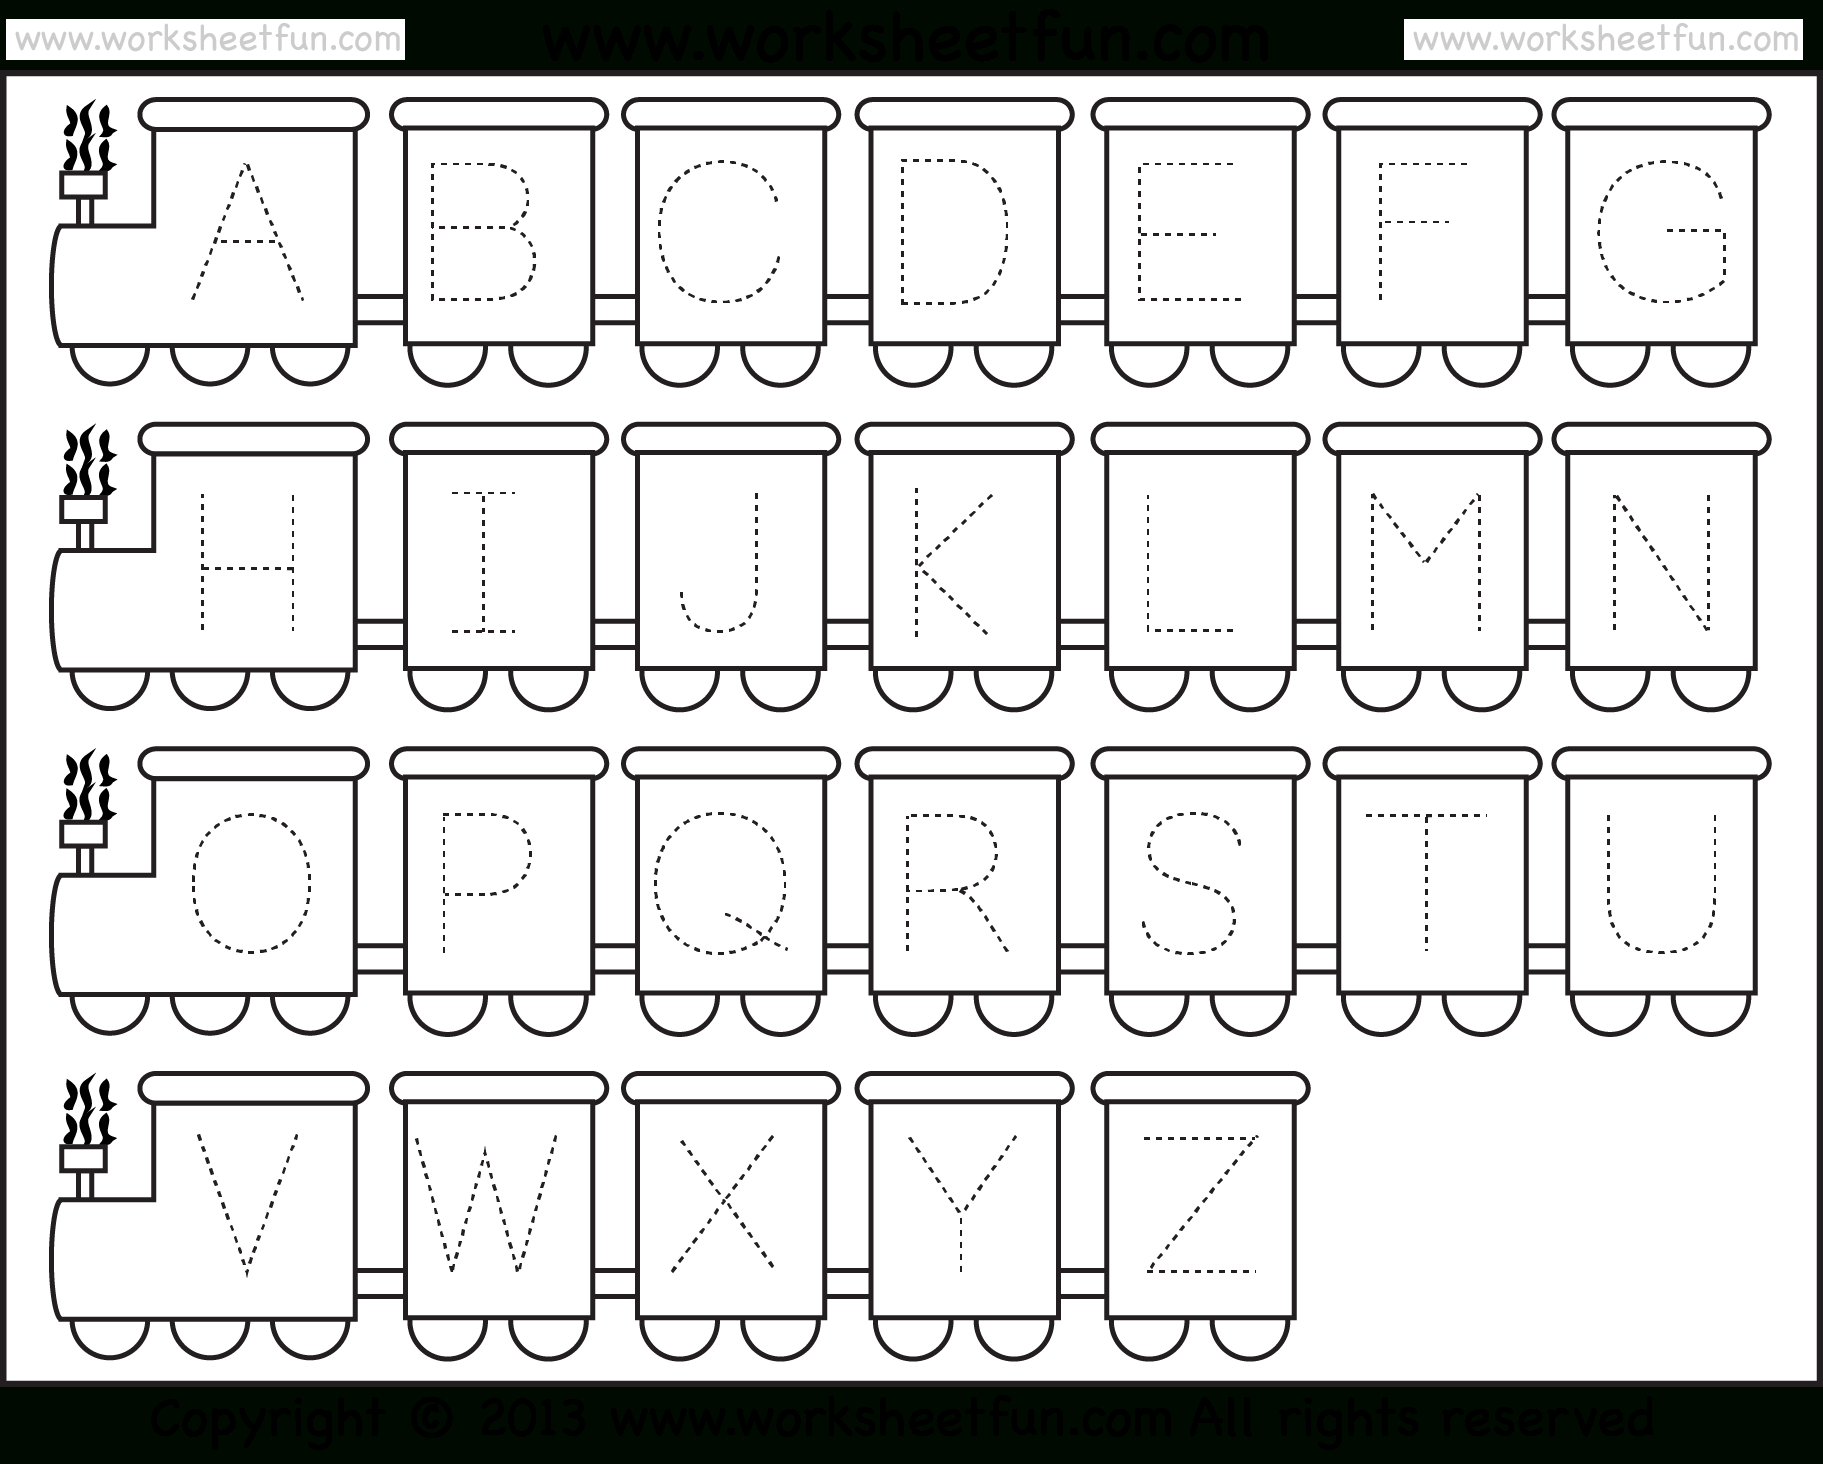 Letter Tracing Worksheet – Train Theme / Free Printable Worksheets - Free Printable Tracing Worksheets